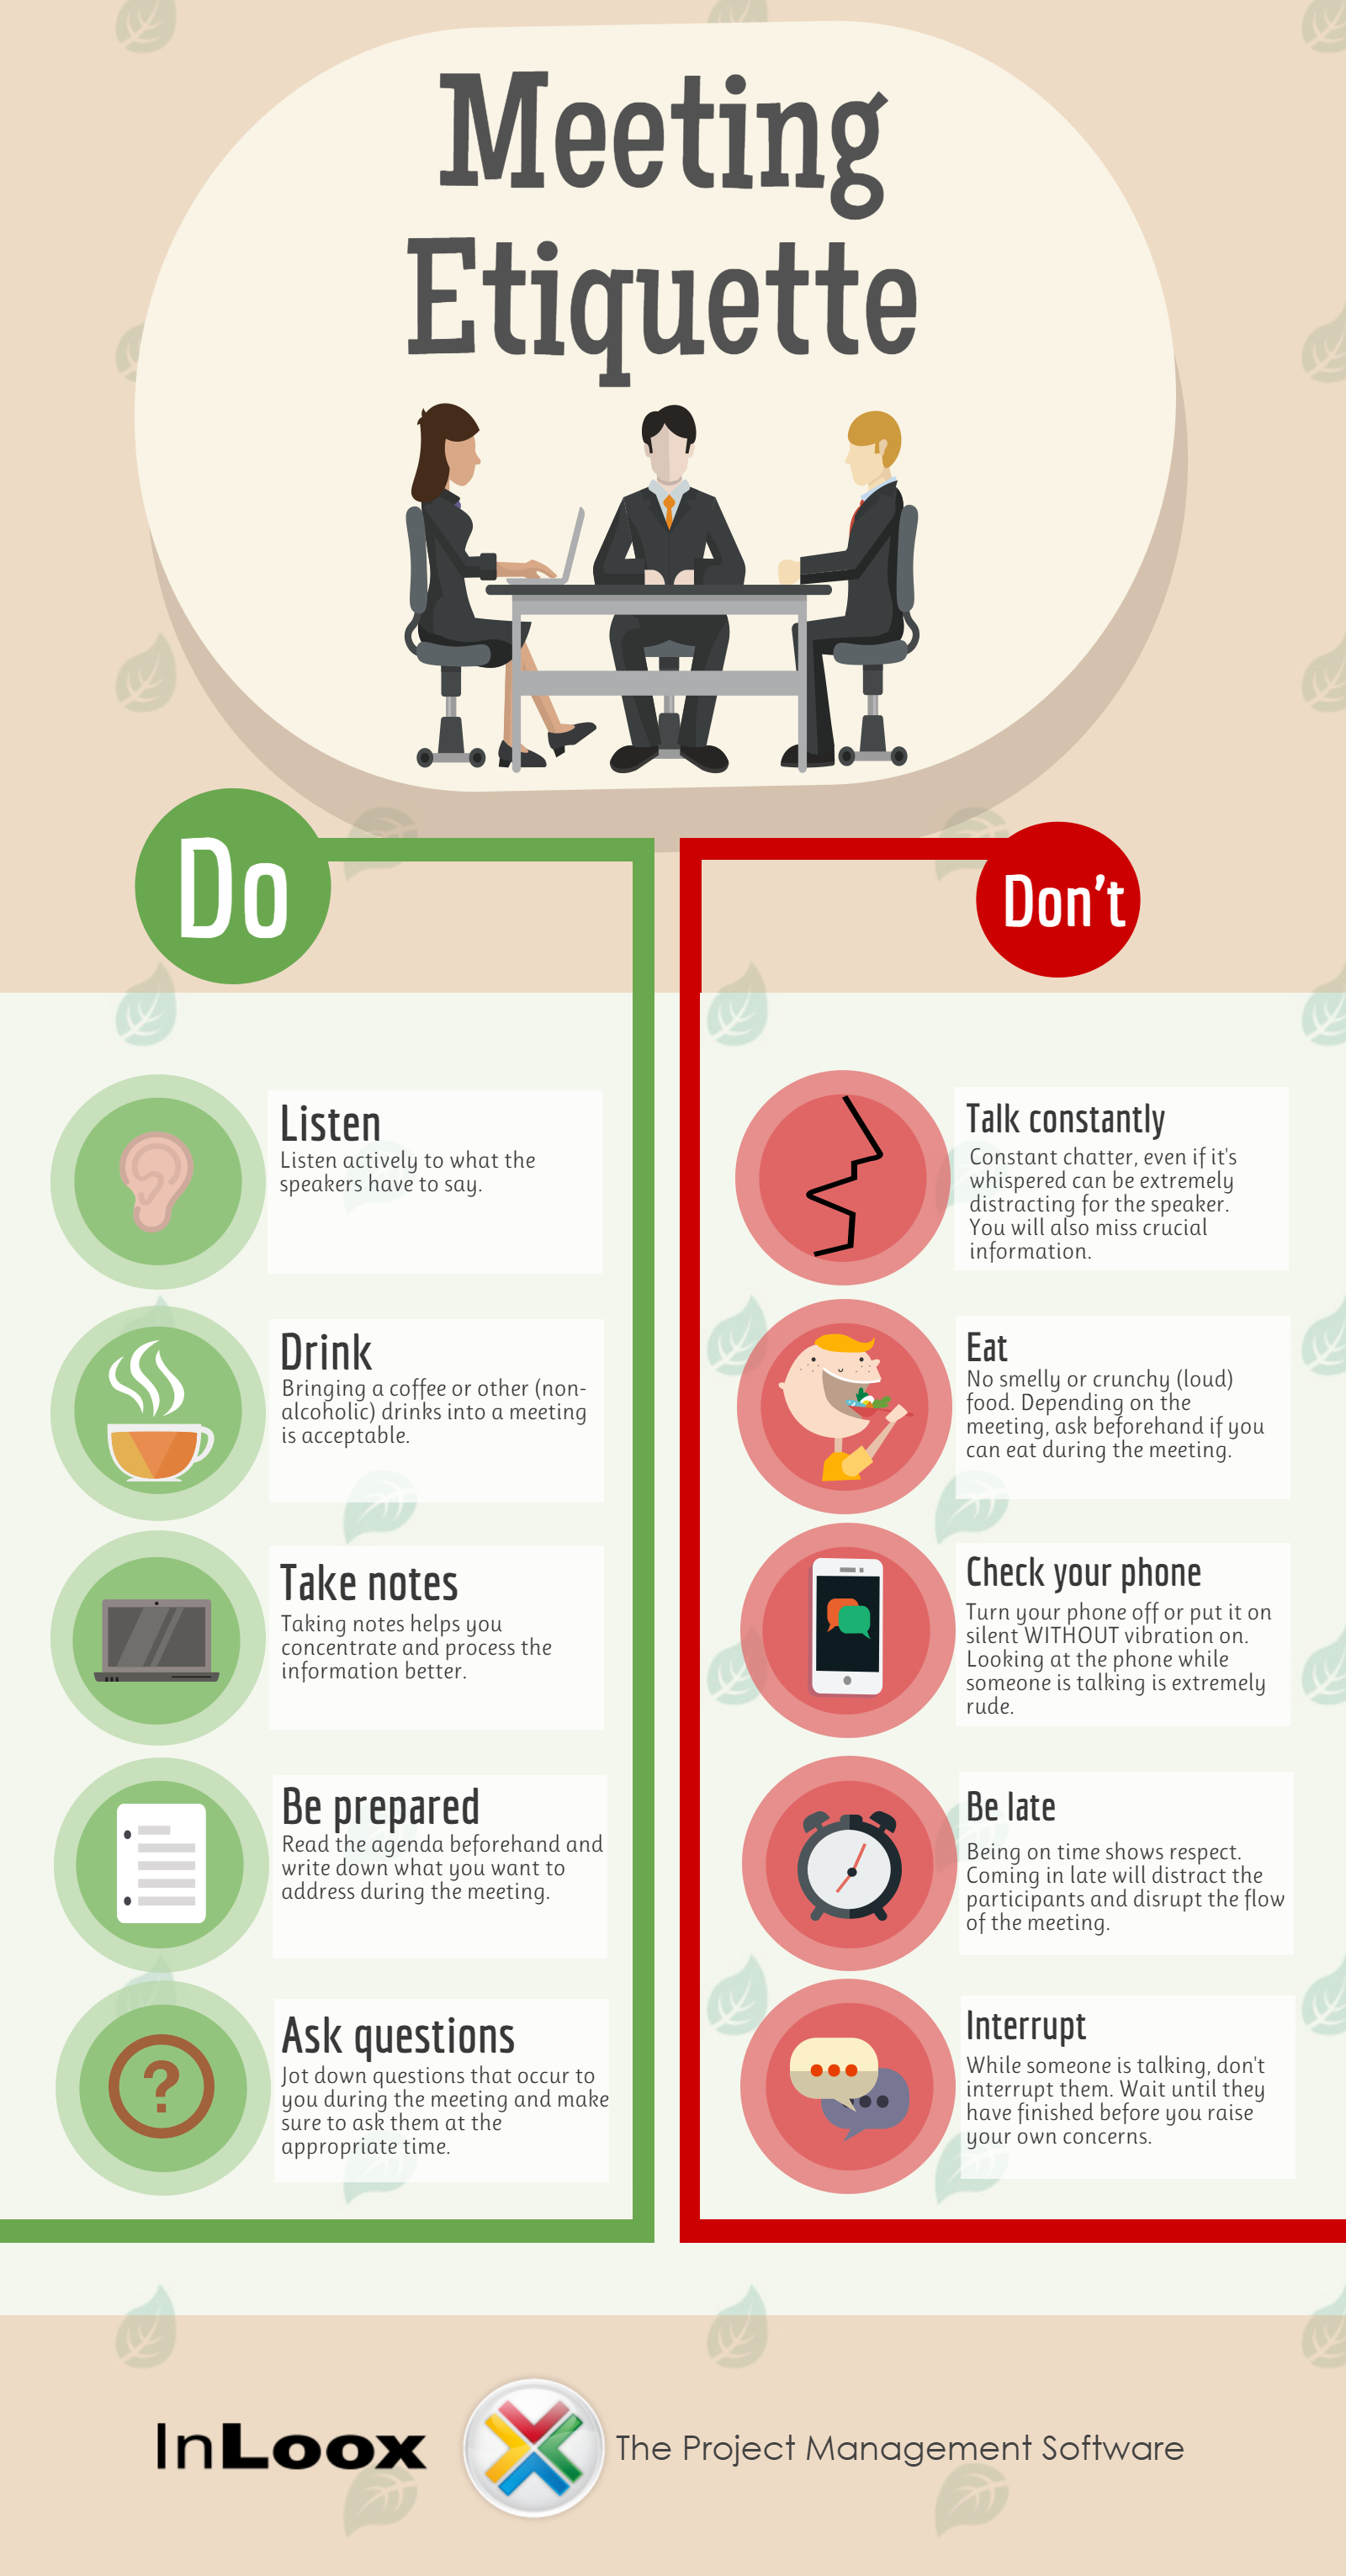 INFOGRAPHIC: Meeting Etiquette Rules to Live By